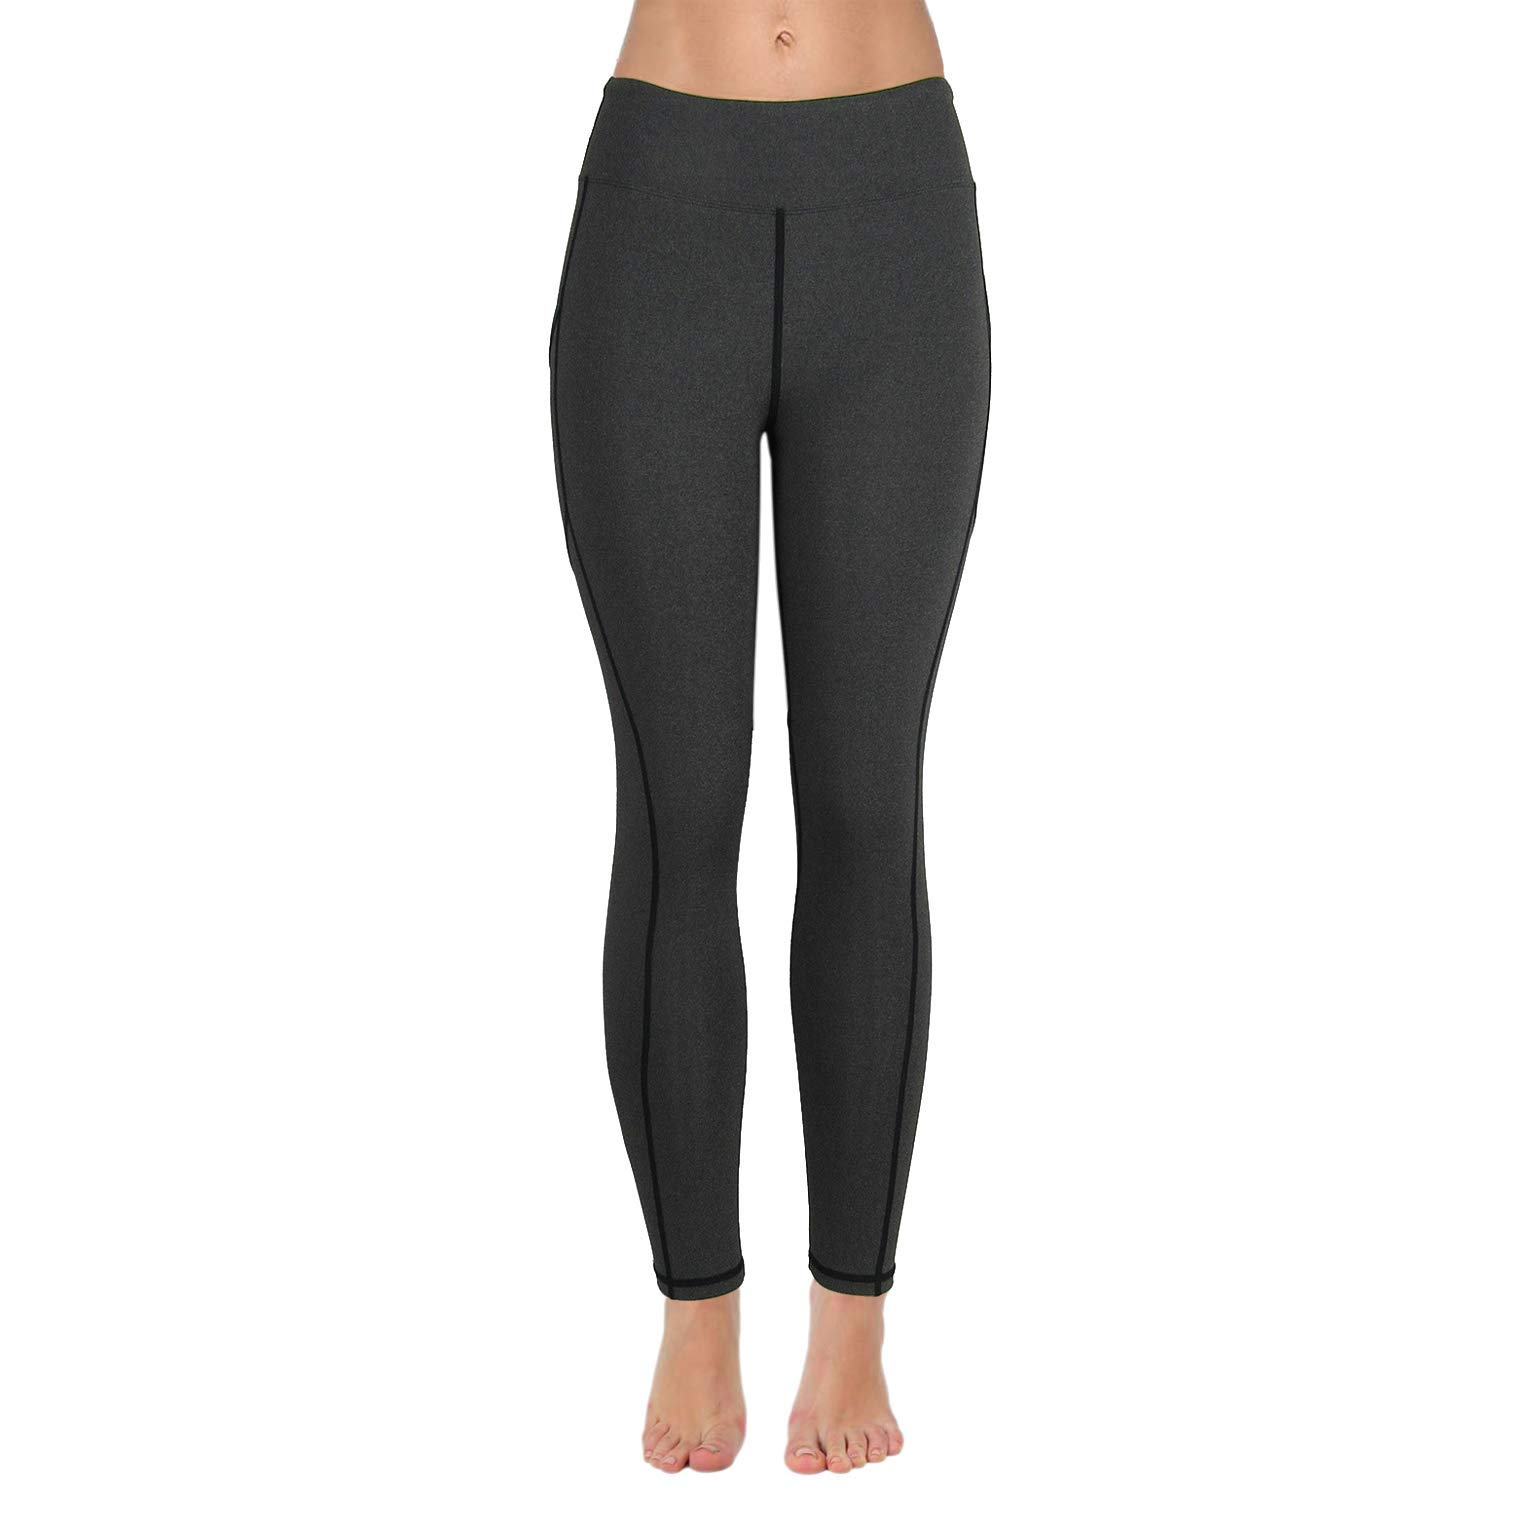 These are the best fitting and most comfortable leggings